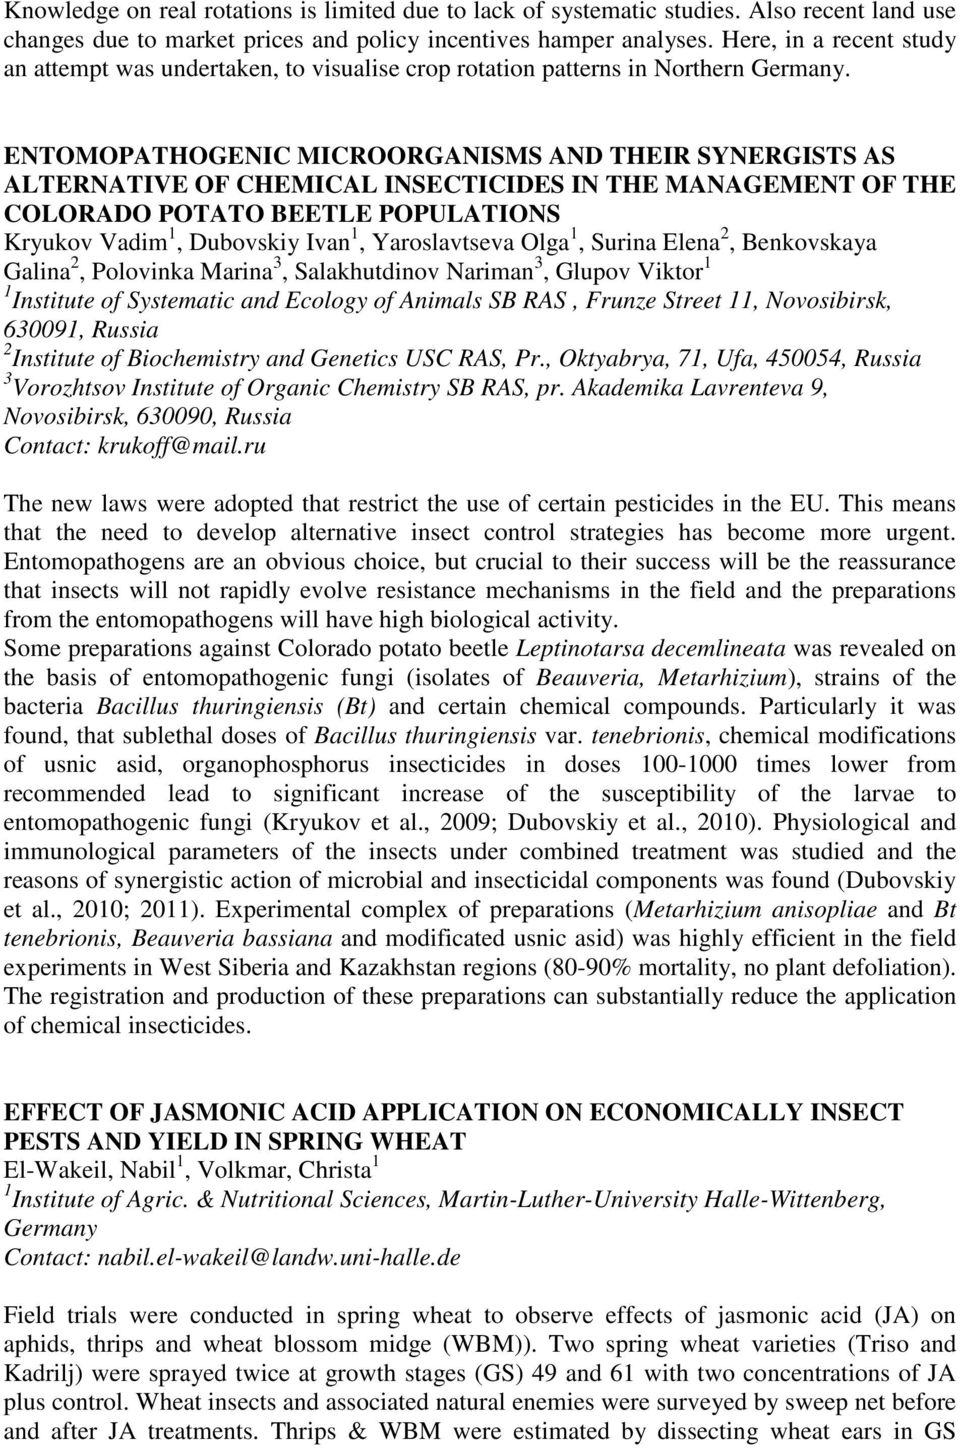 ENTOMOPATHOGENIC MICROORGANISMS AND THEIR SYNERGISTS AS ALTERNATIVE OF CHEMICAL INSECTICIDES IN THE MANAGEMENT OF THE COLORADO POTATO BEETLE POPULATIONS Kryukov Vadim 1, Dubovskiy Ivan 1,